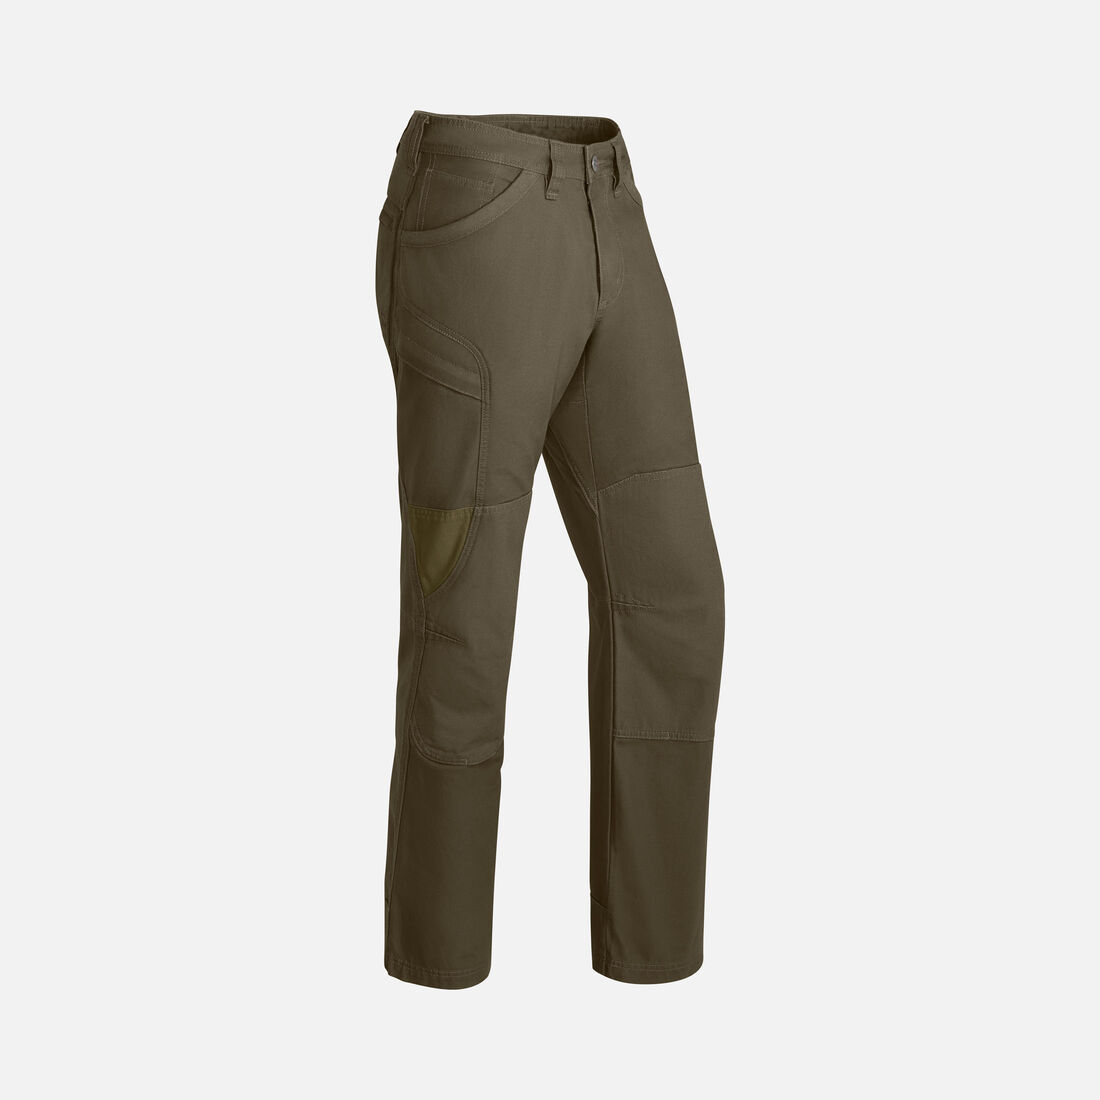 Men's Flint Pant in Black Olive/Olive Green - large view.